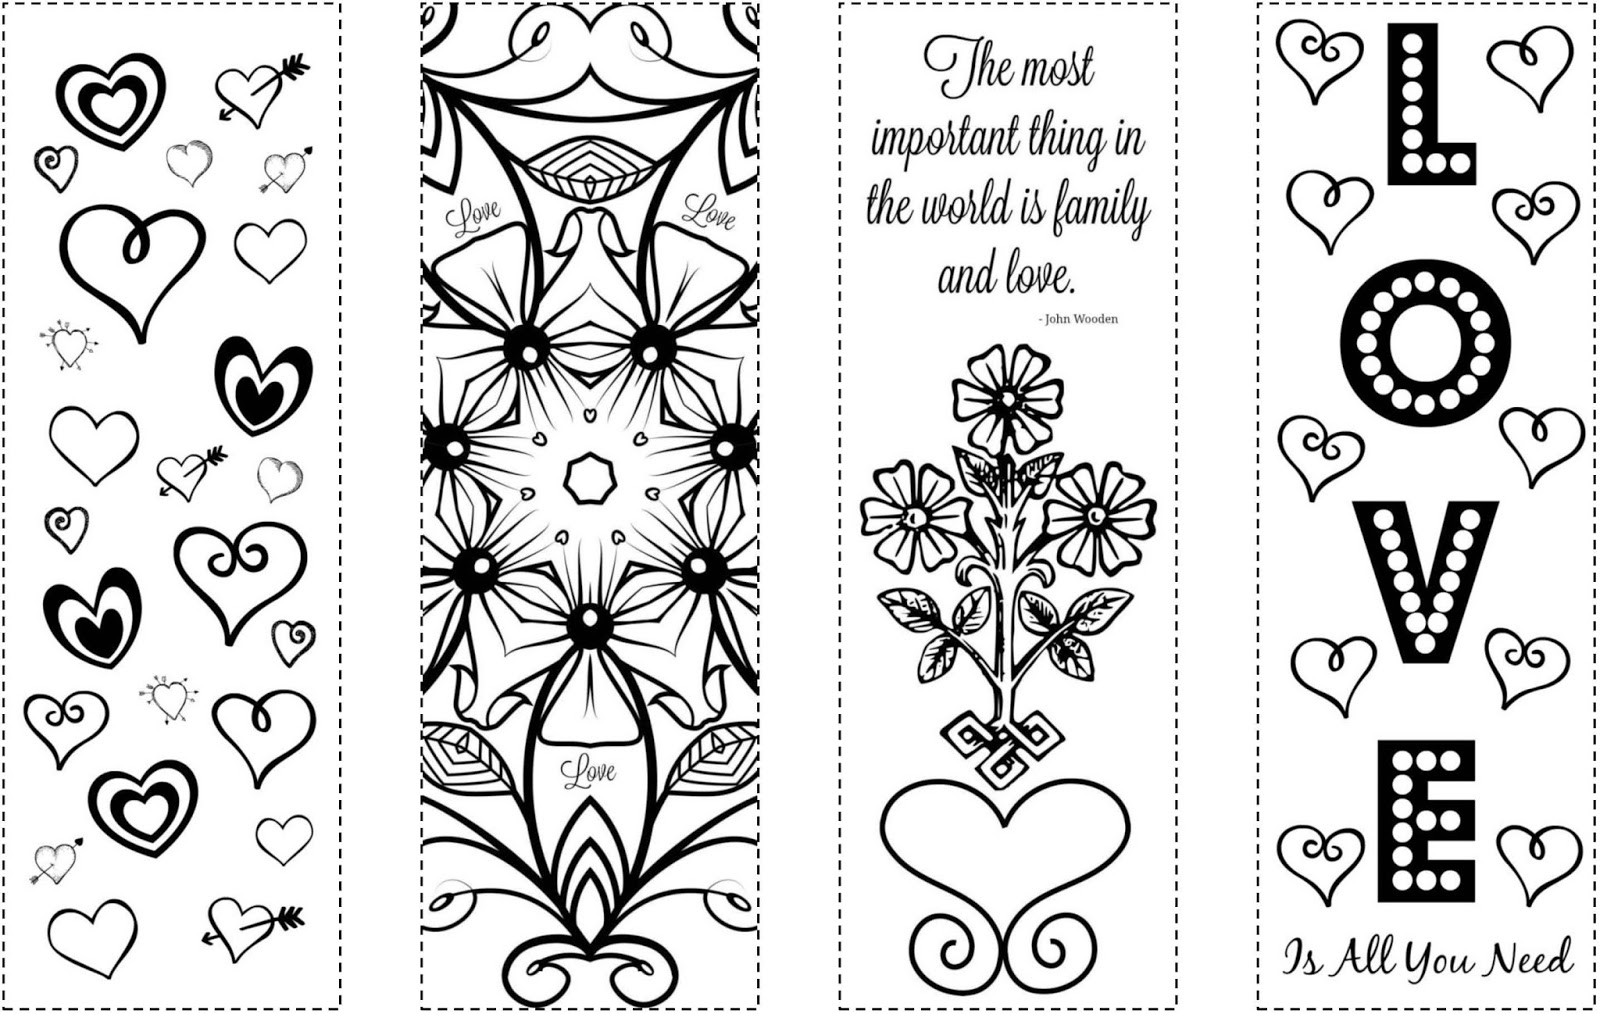 picture relating to Free Printable Bookmarks to Color Pdf identify CJO Image: Printable Bookmarks: Valentines Working day Coloring